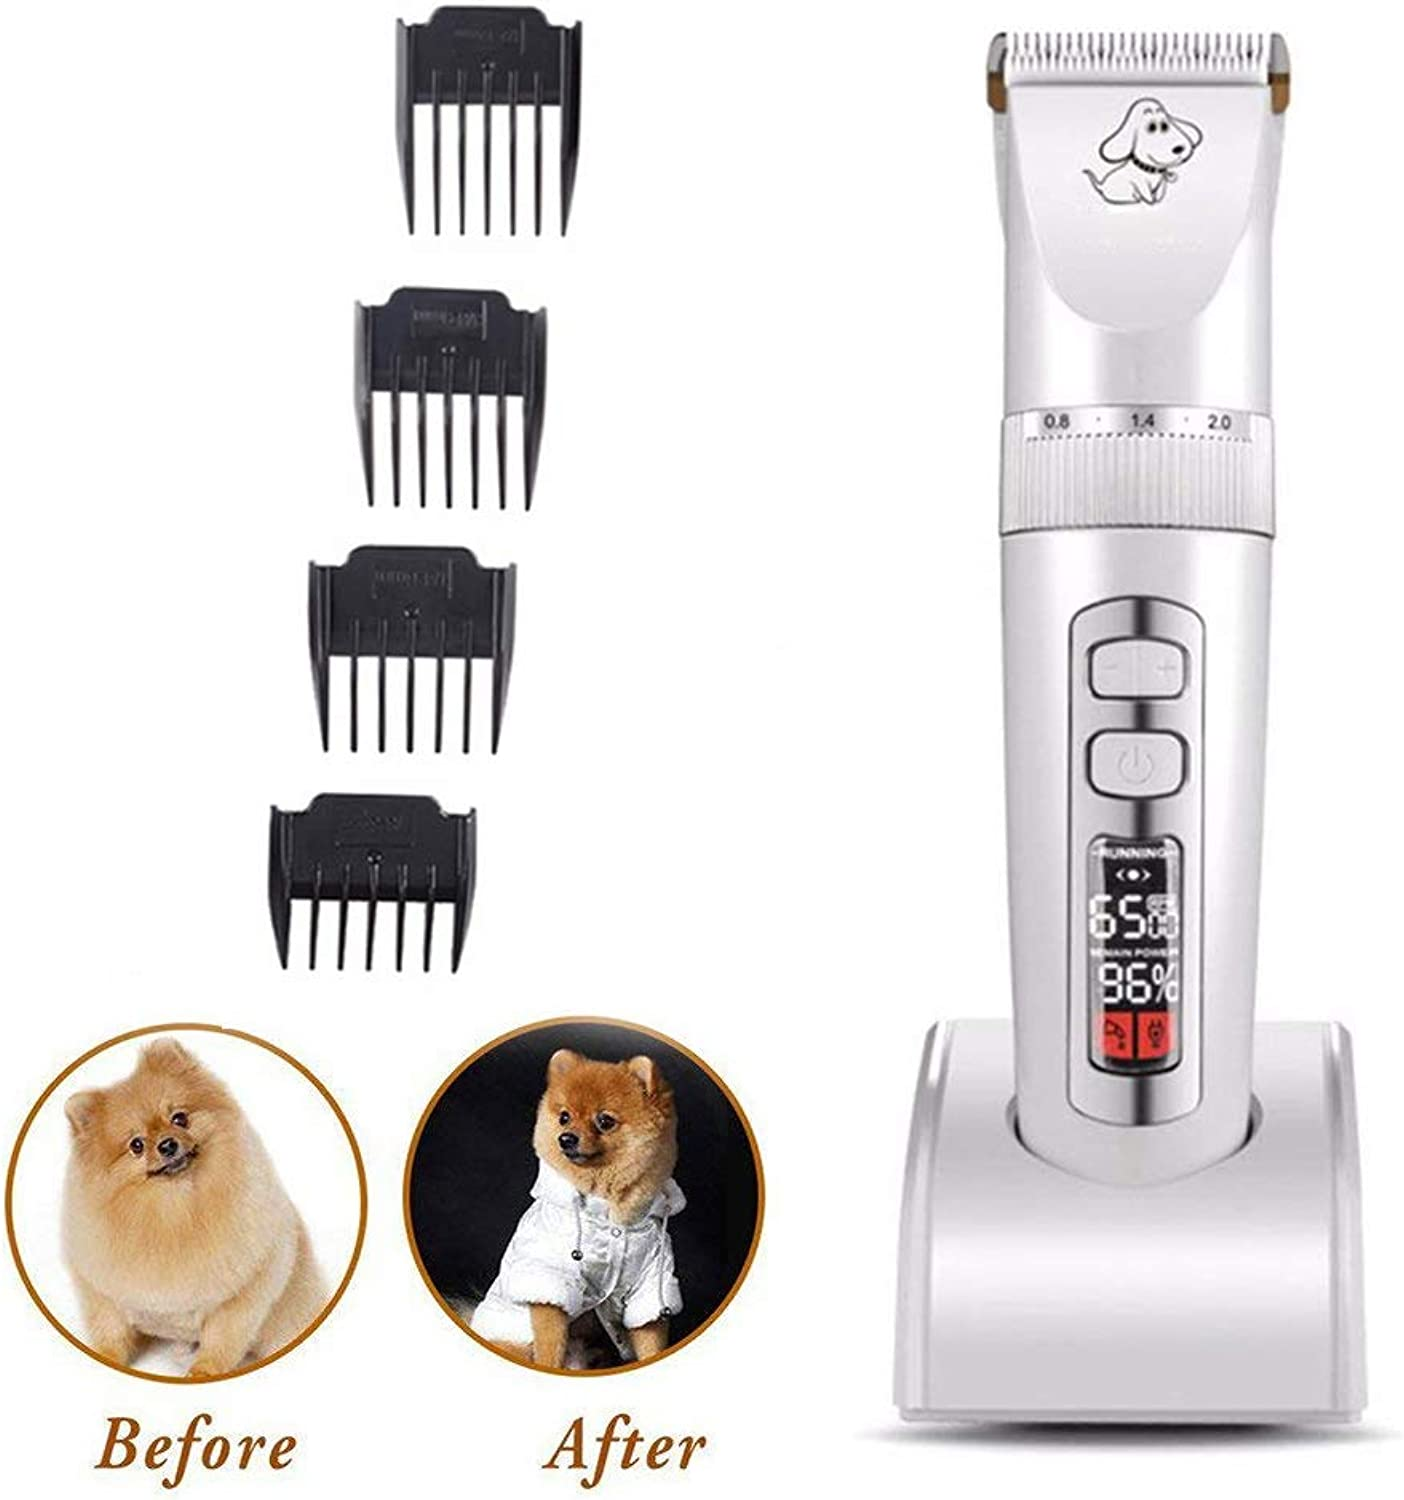 REIZYO Dog Grooming Clippers, 3Speed Low Noise Pet Shaver Rechargeable Cordless Dog Hair Trimmer Electric Pet Tool Professional For Dogs Cats Horses With LED Screen Indication Intelligent,White